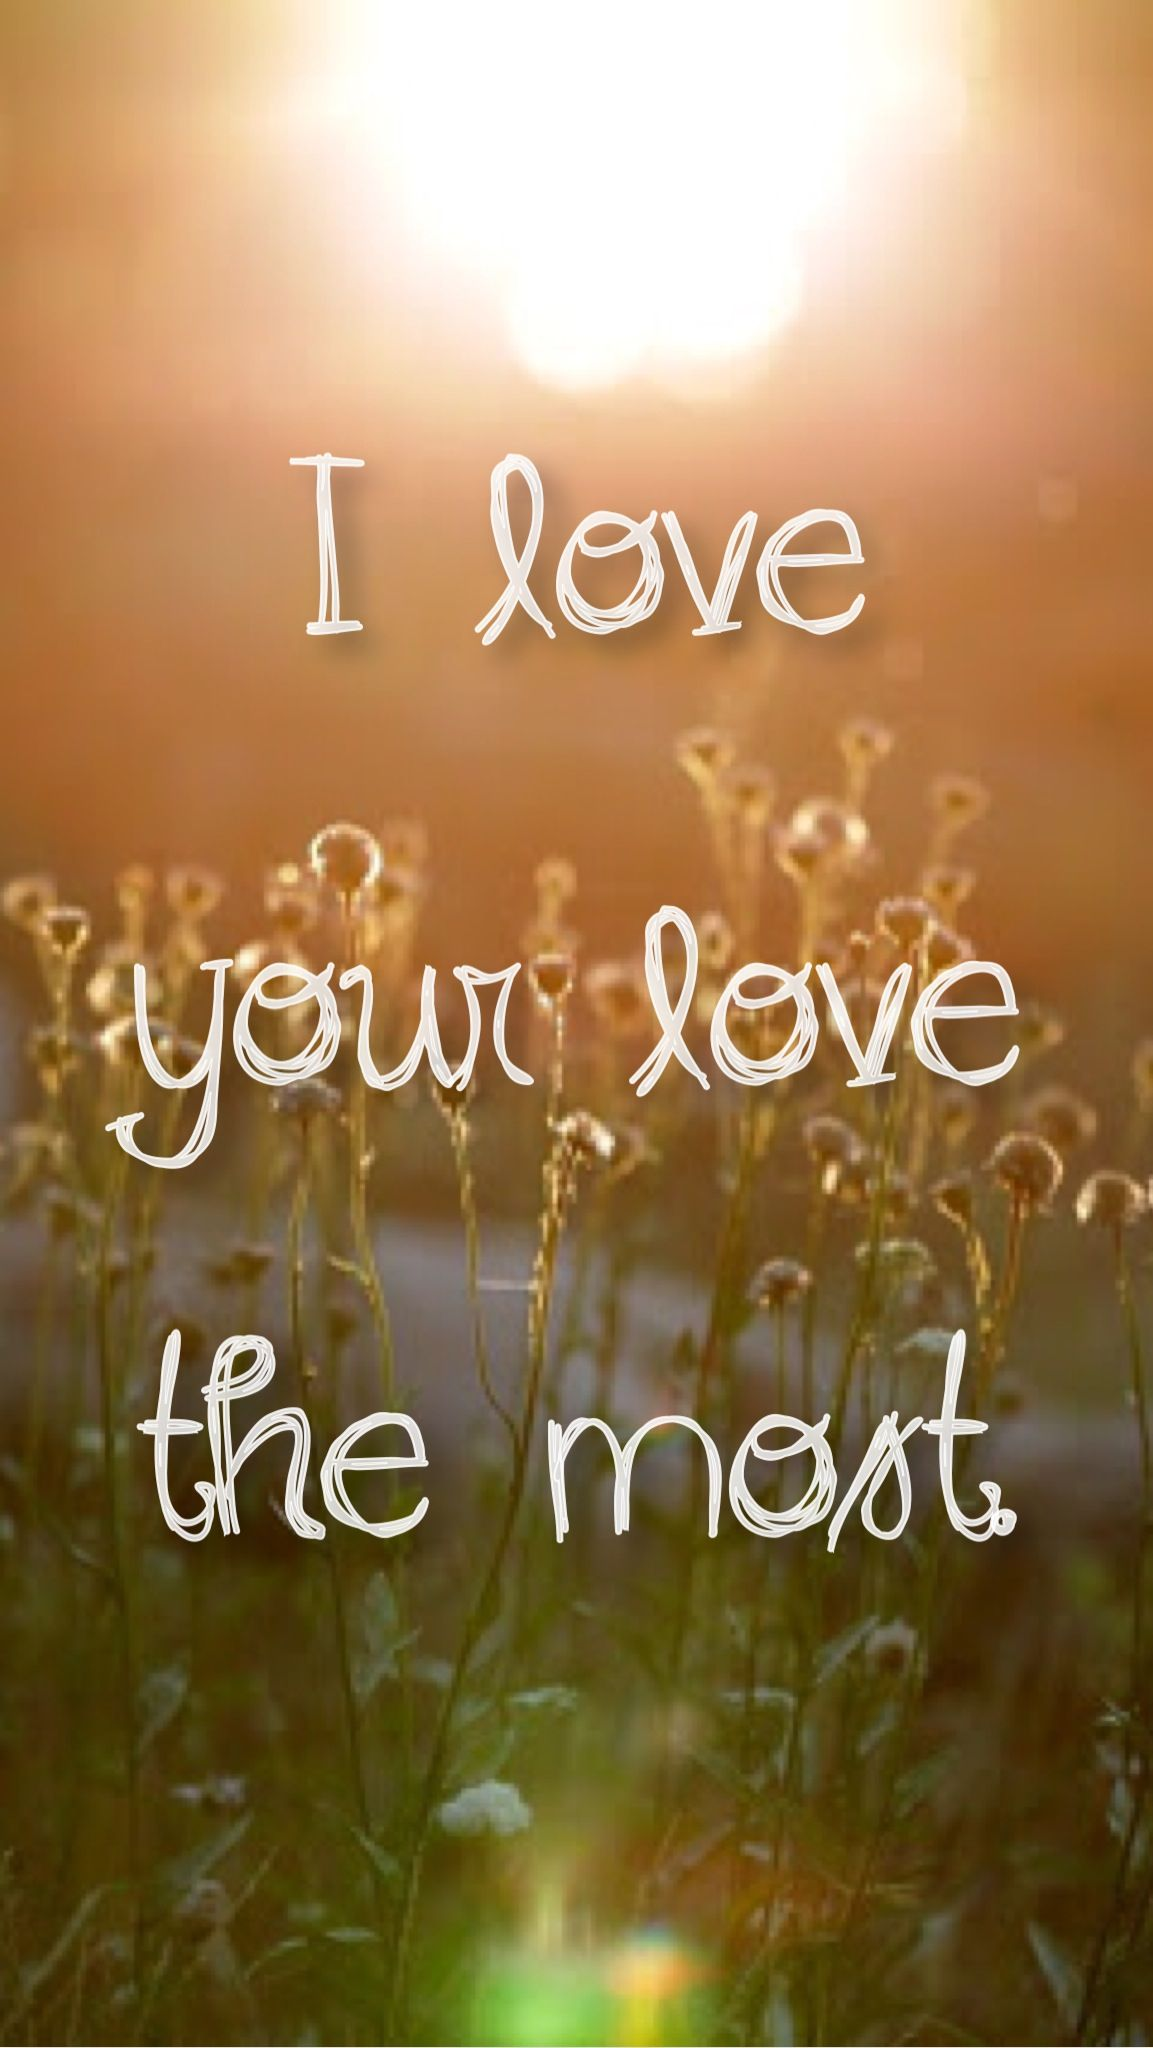 I Love You Love The Most Love Your Love The Most By Eric Church Lyrics Country Quotes Country Love Quotes Country Love Song Lyrics Eric Church Lyrics